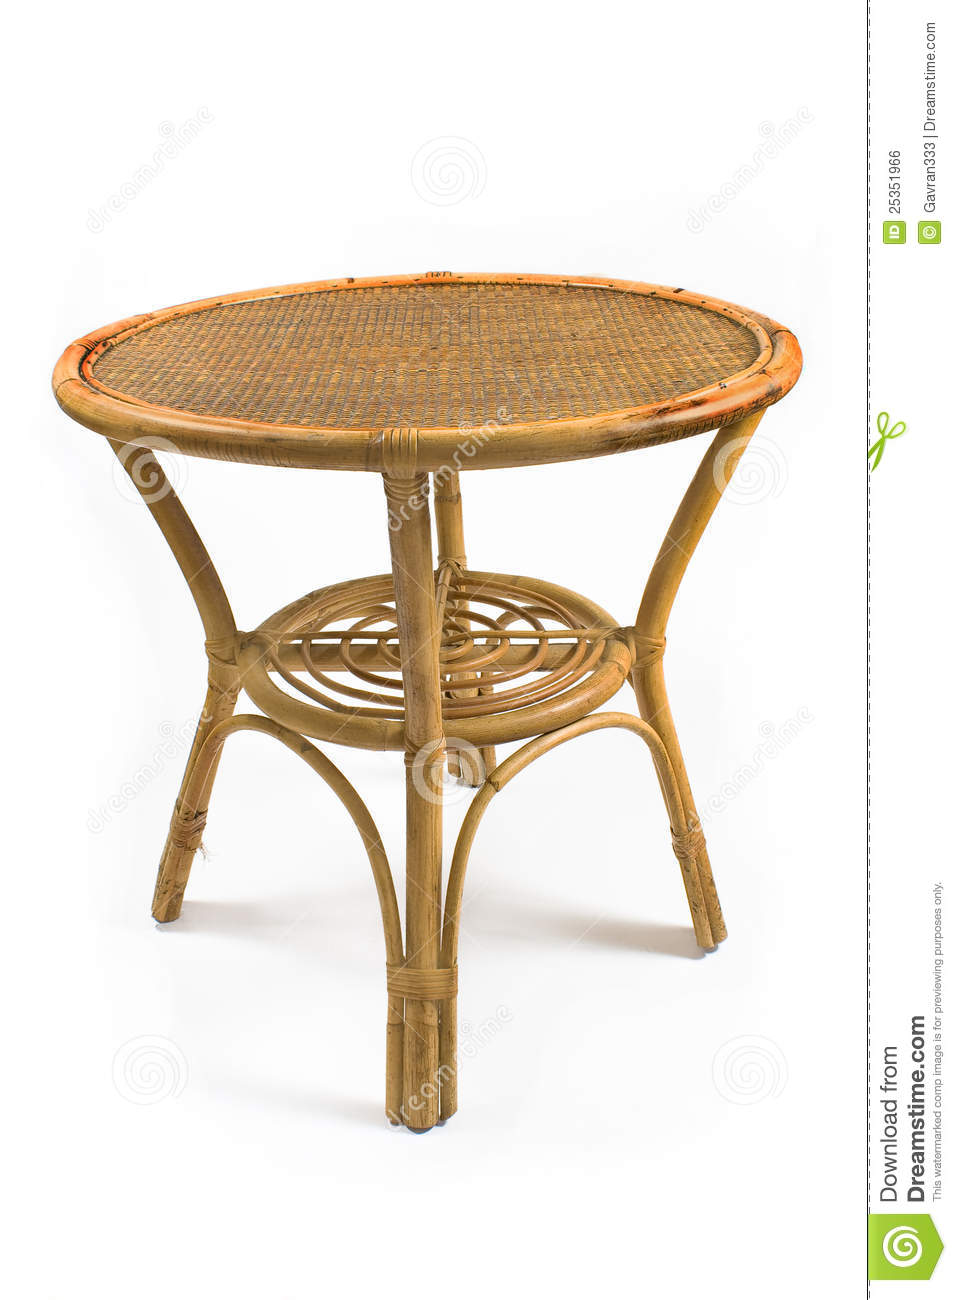 Rattan Table Royalty Free Stock Image - Image: 25351966